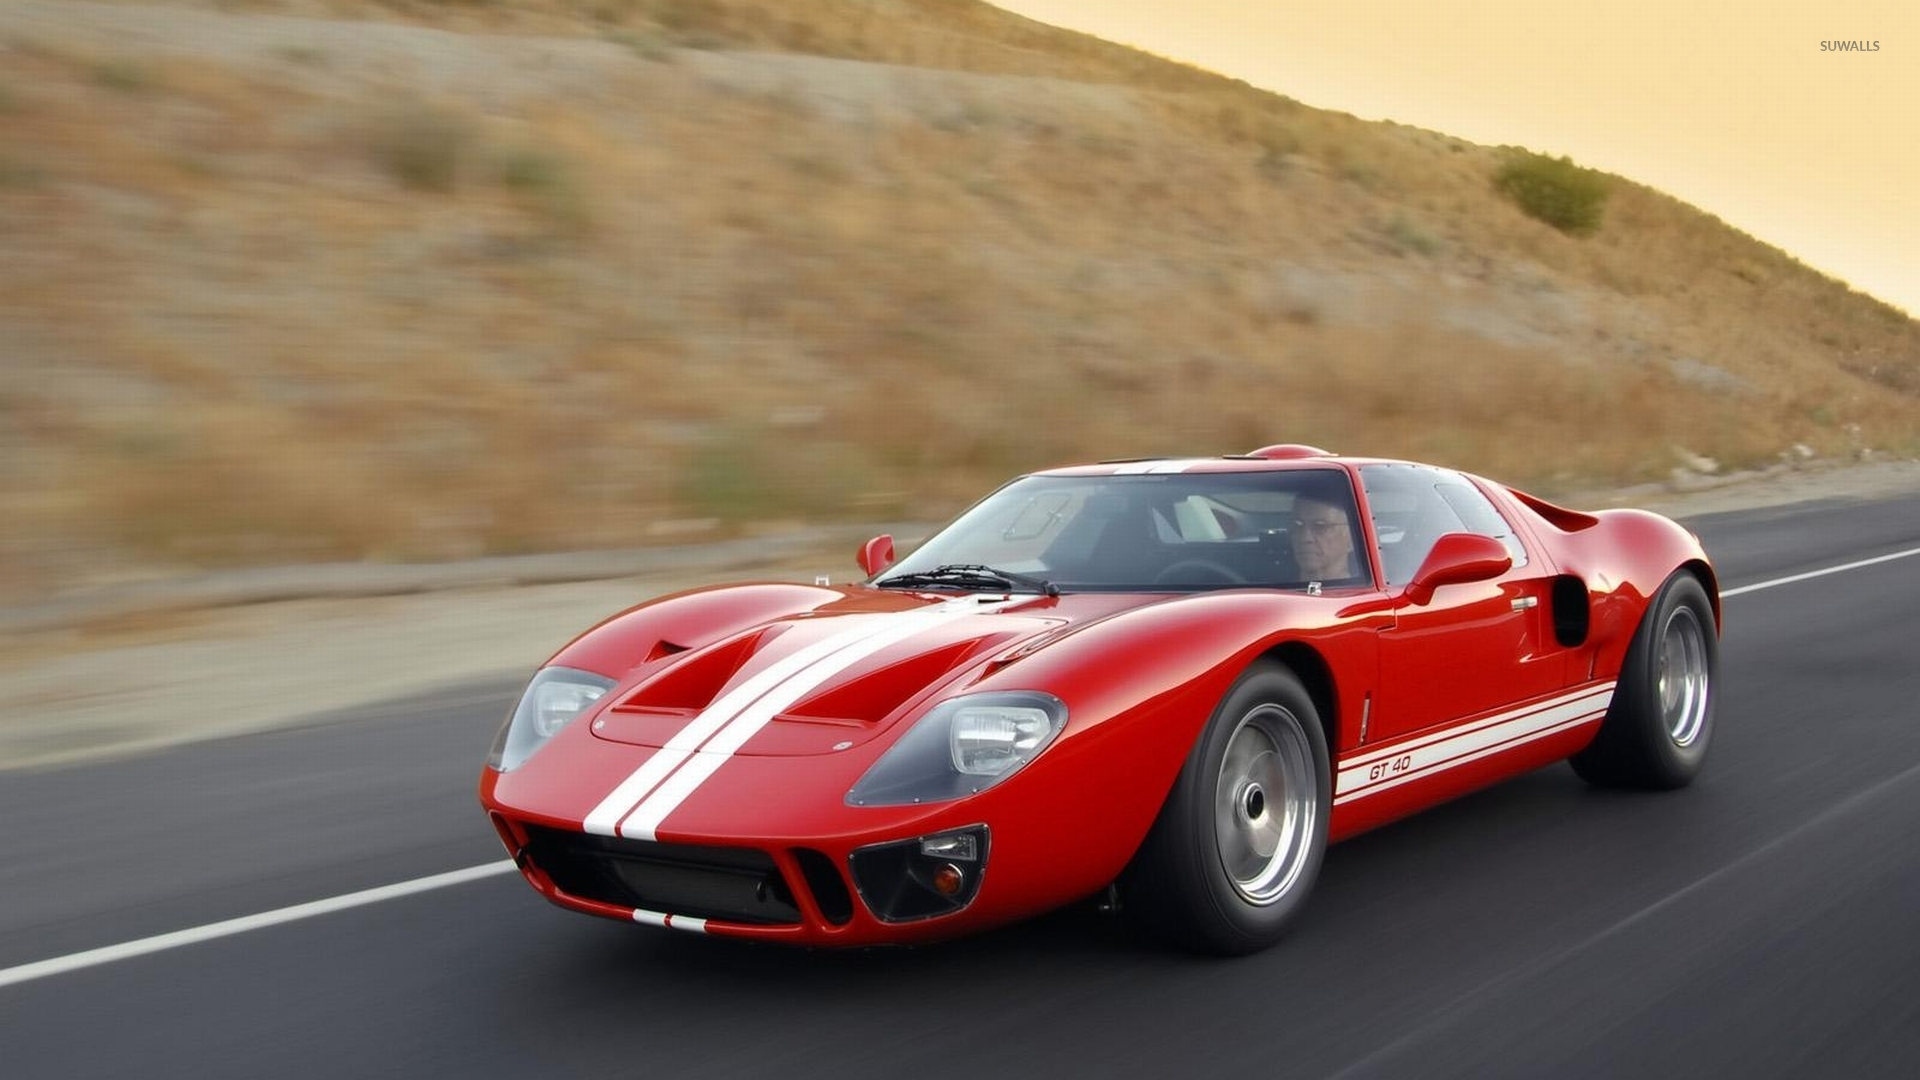 Ford GT40 wallpaper - Car wallpapers